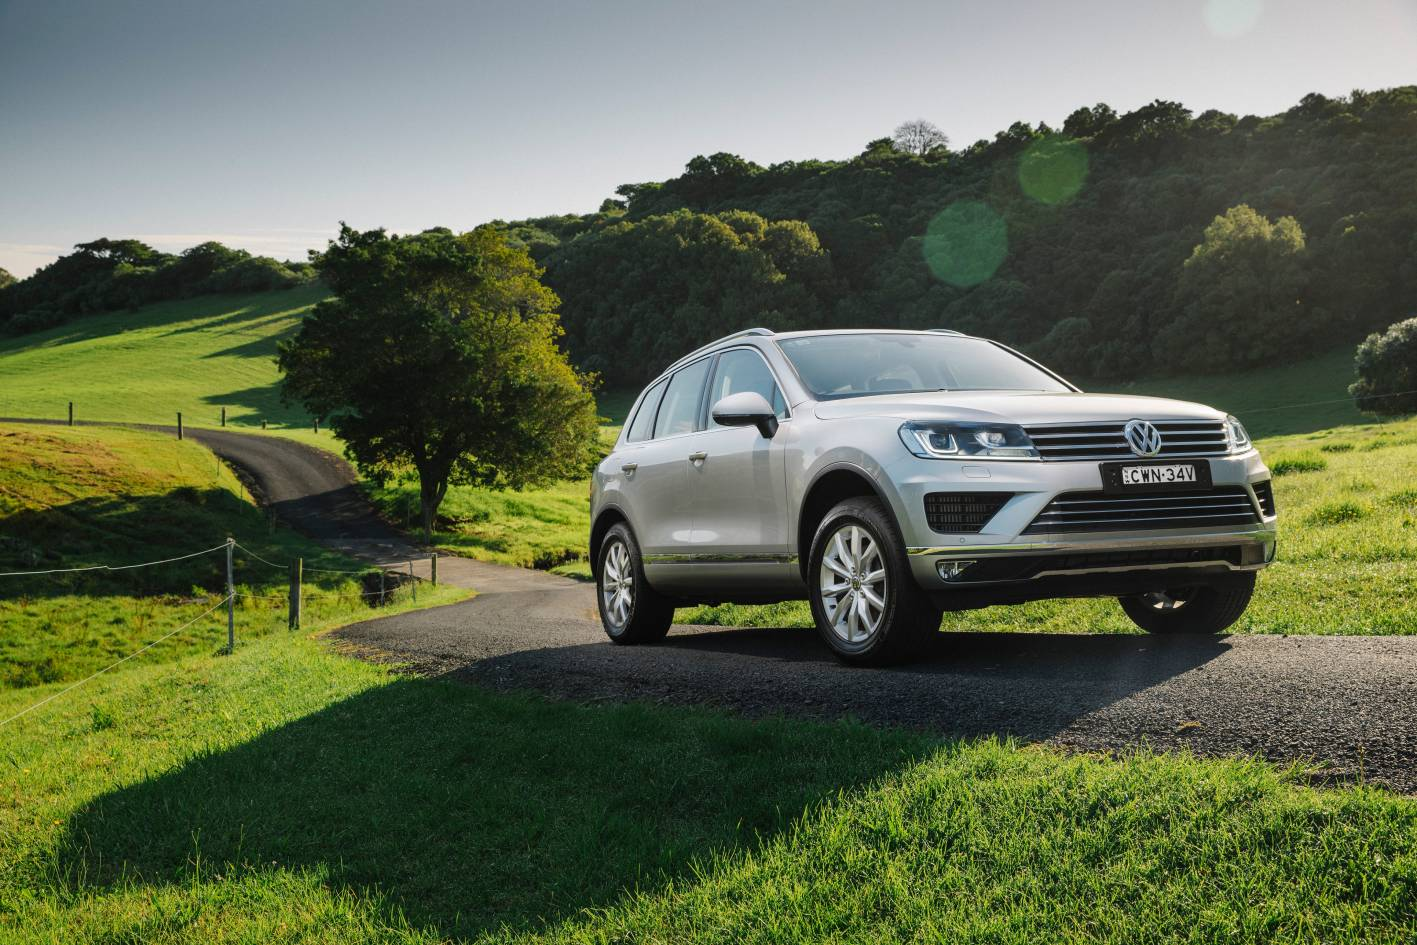 volkswagen cars news 2015 vw touareg refreshed with more equipment. Black Bedroom Furniture Sets. Home Design Ideas